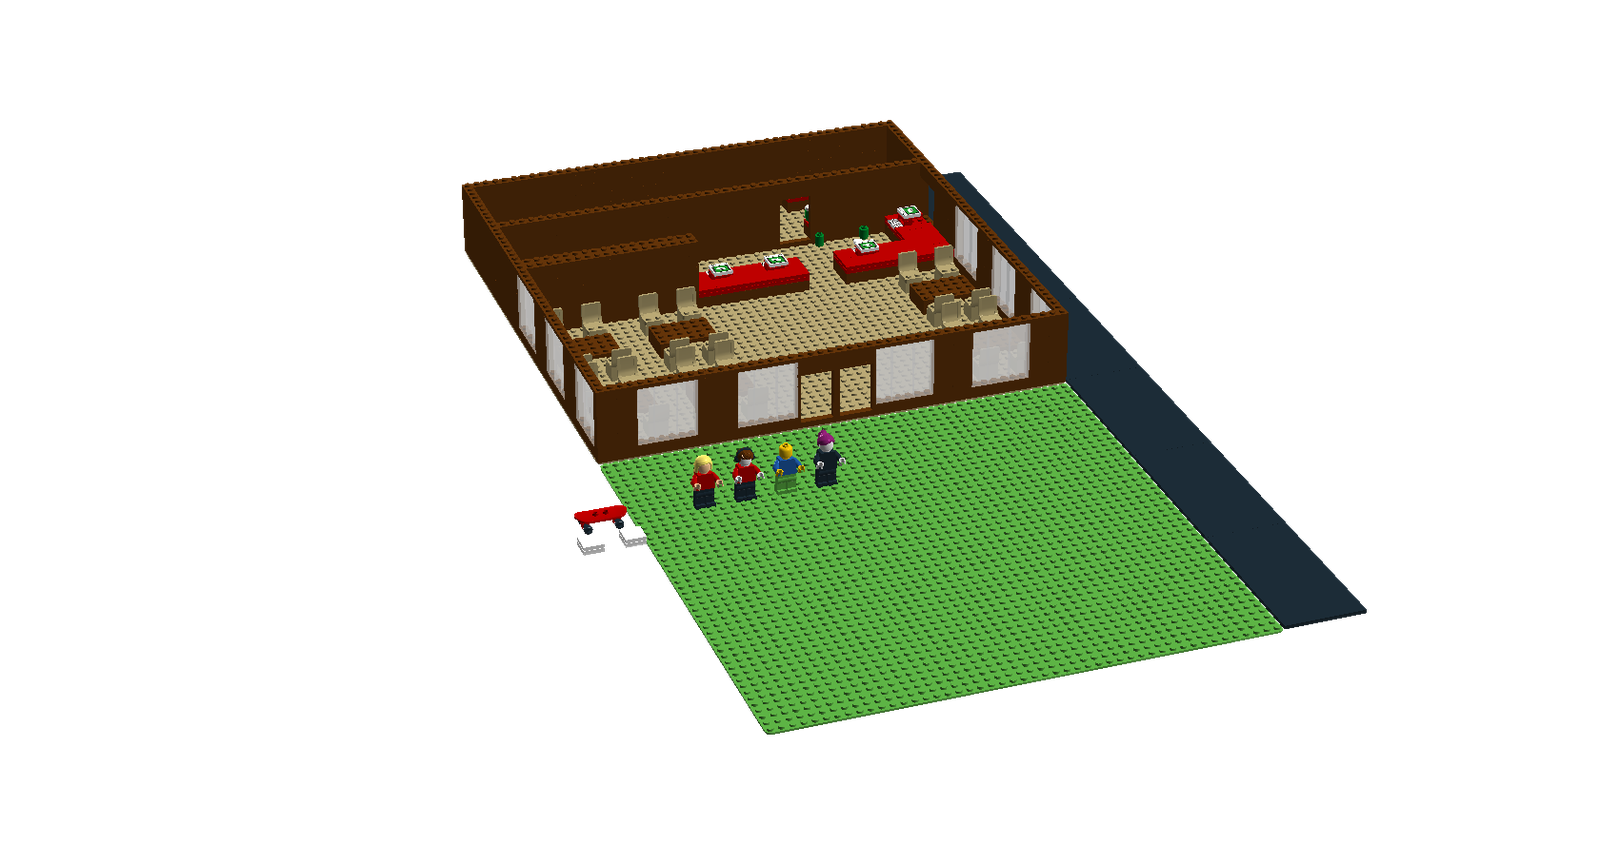 Lego Ideas Product Ideas Lego Roblox Work At The Pizza Place